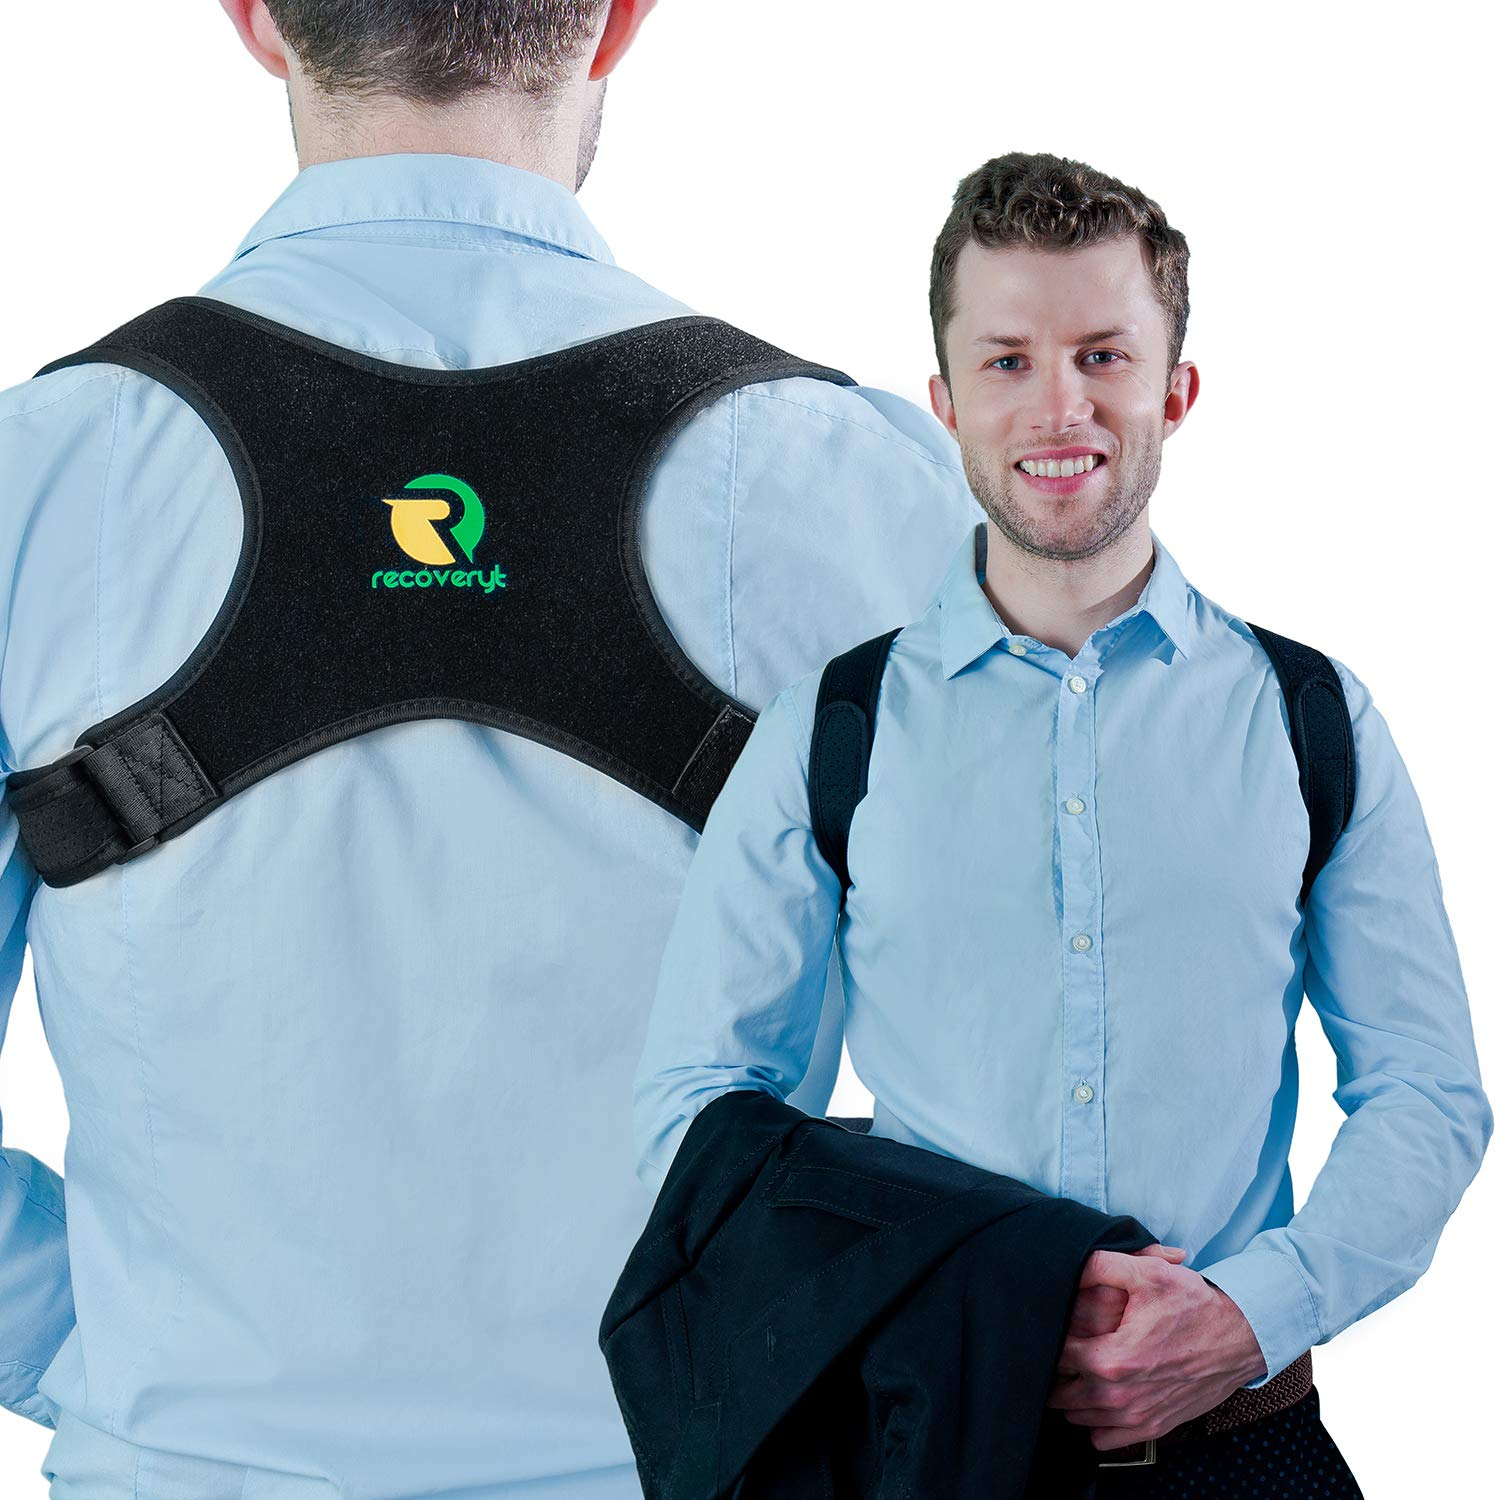 Back Posture Corrector for Men and Women by Recoveryt - Adjustable Upper Back Brace for Shoulder Pain Relief - Helps Correct Slouching by Stretching Upper Body Muscles - Easy to Wear and Comfortable by Recoveryt